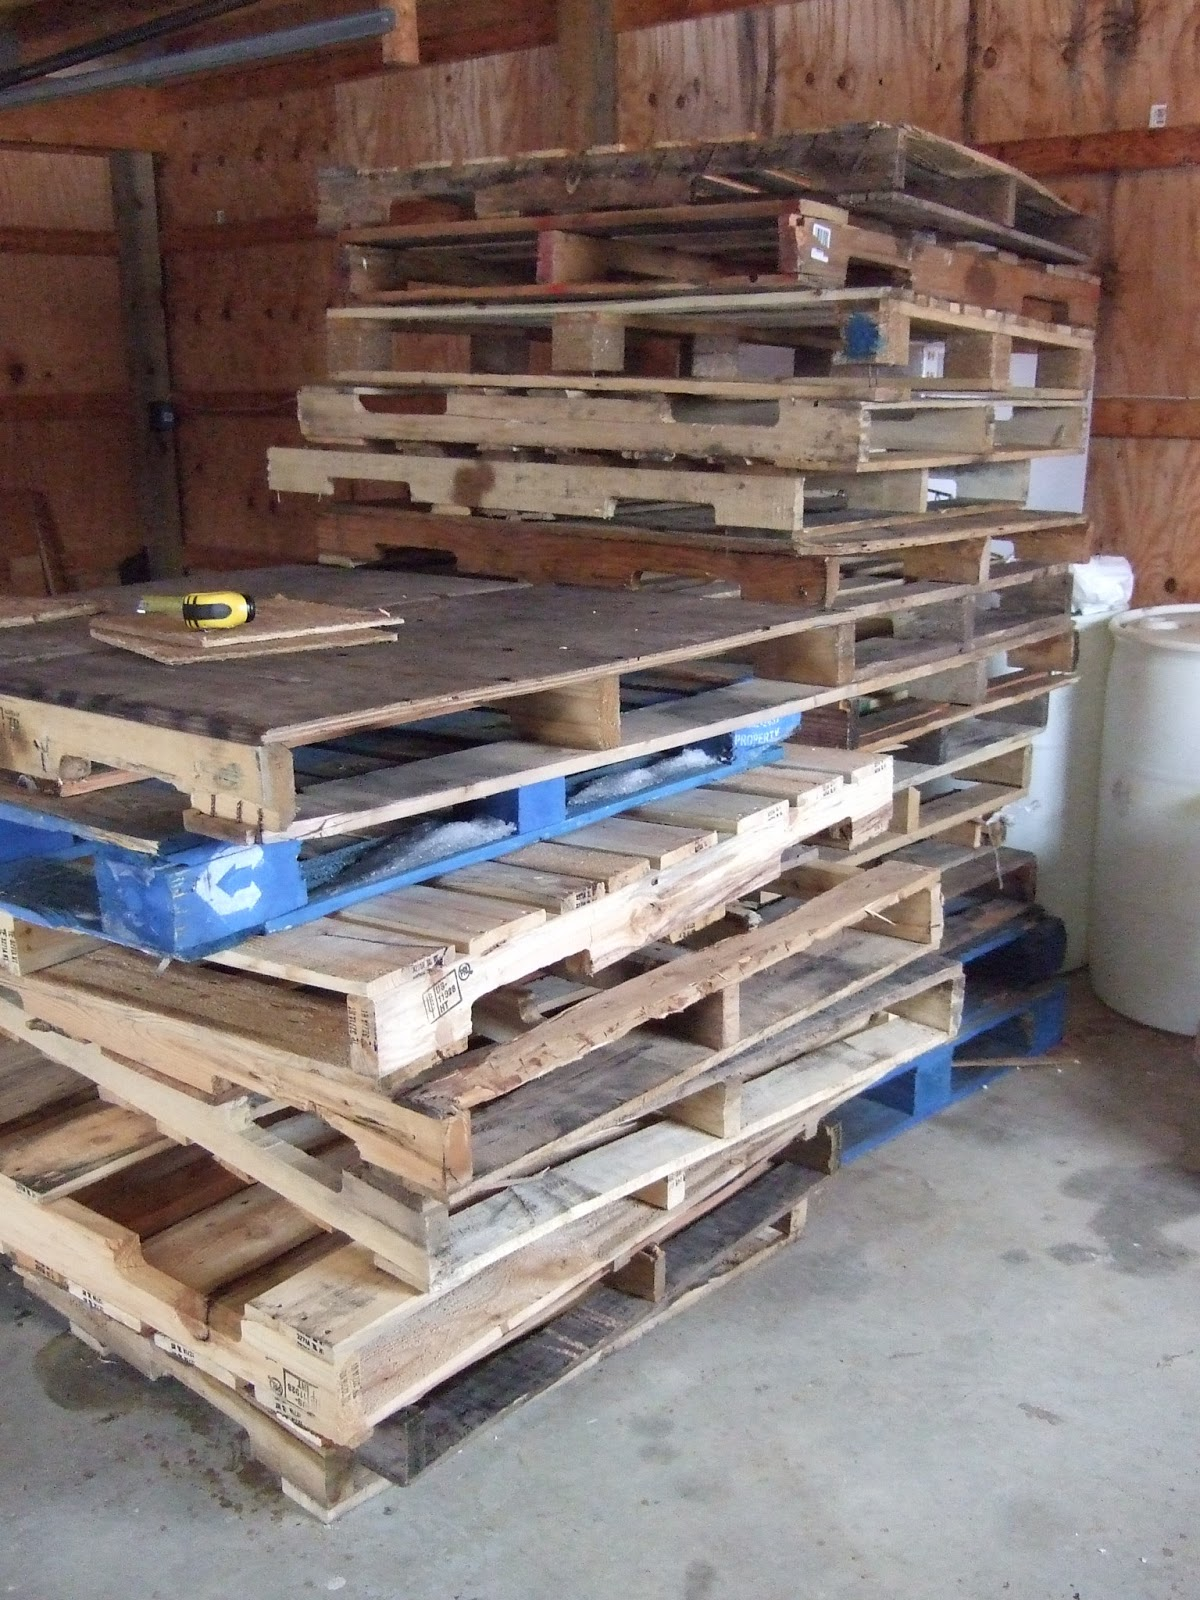 The Shire Farm Pig Pen Made out of Pallets